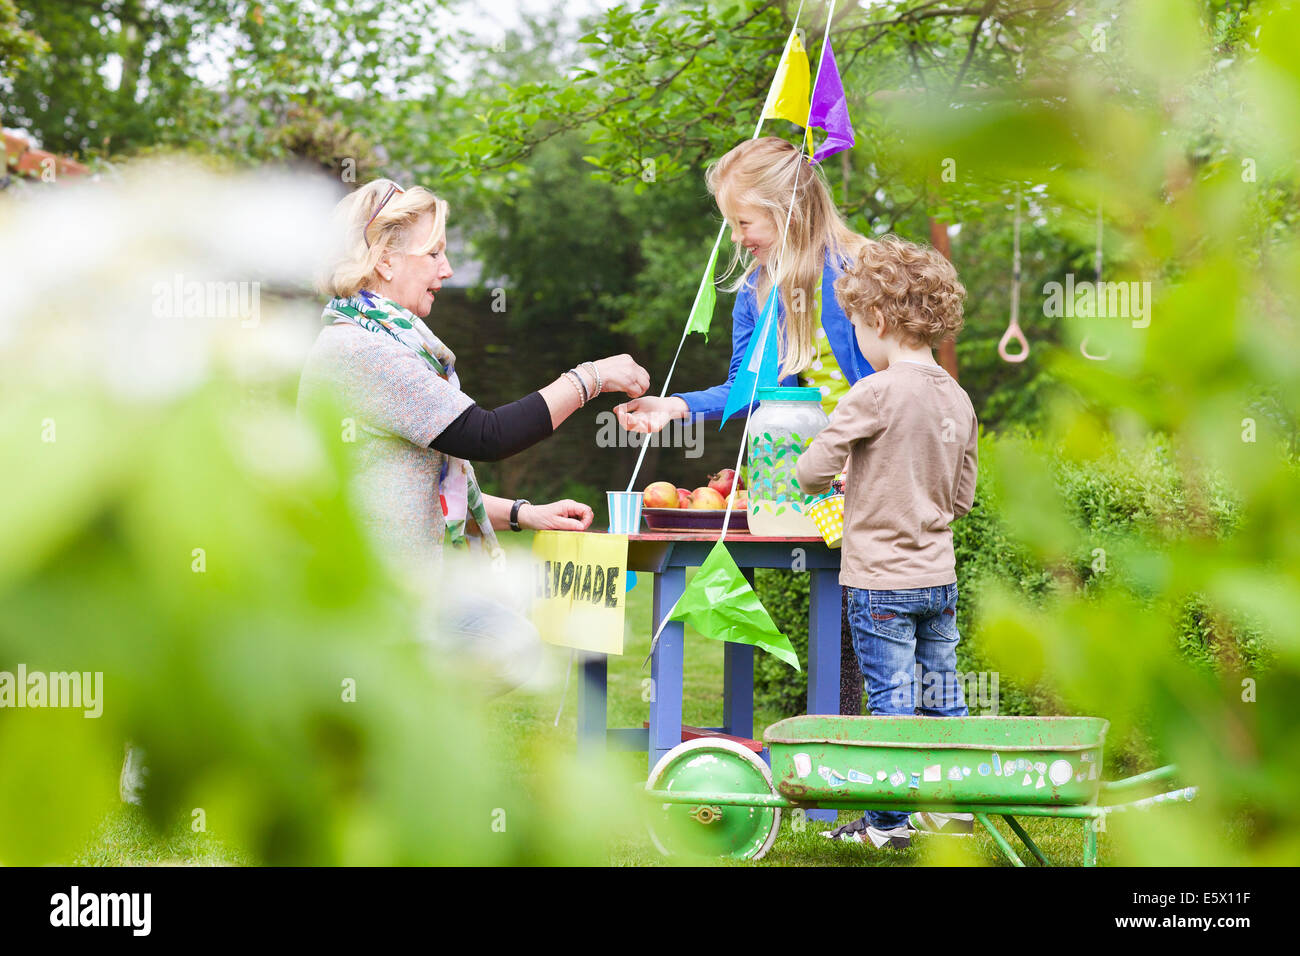 Grandmother buying lemonade from grandchildren's stand Stock Photo